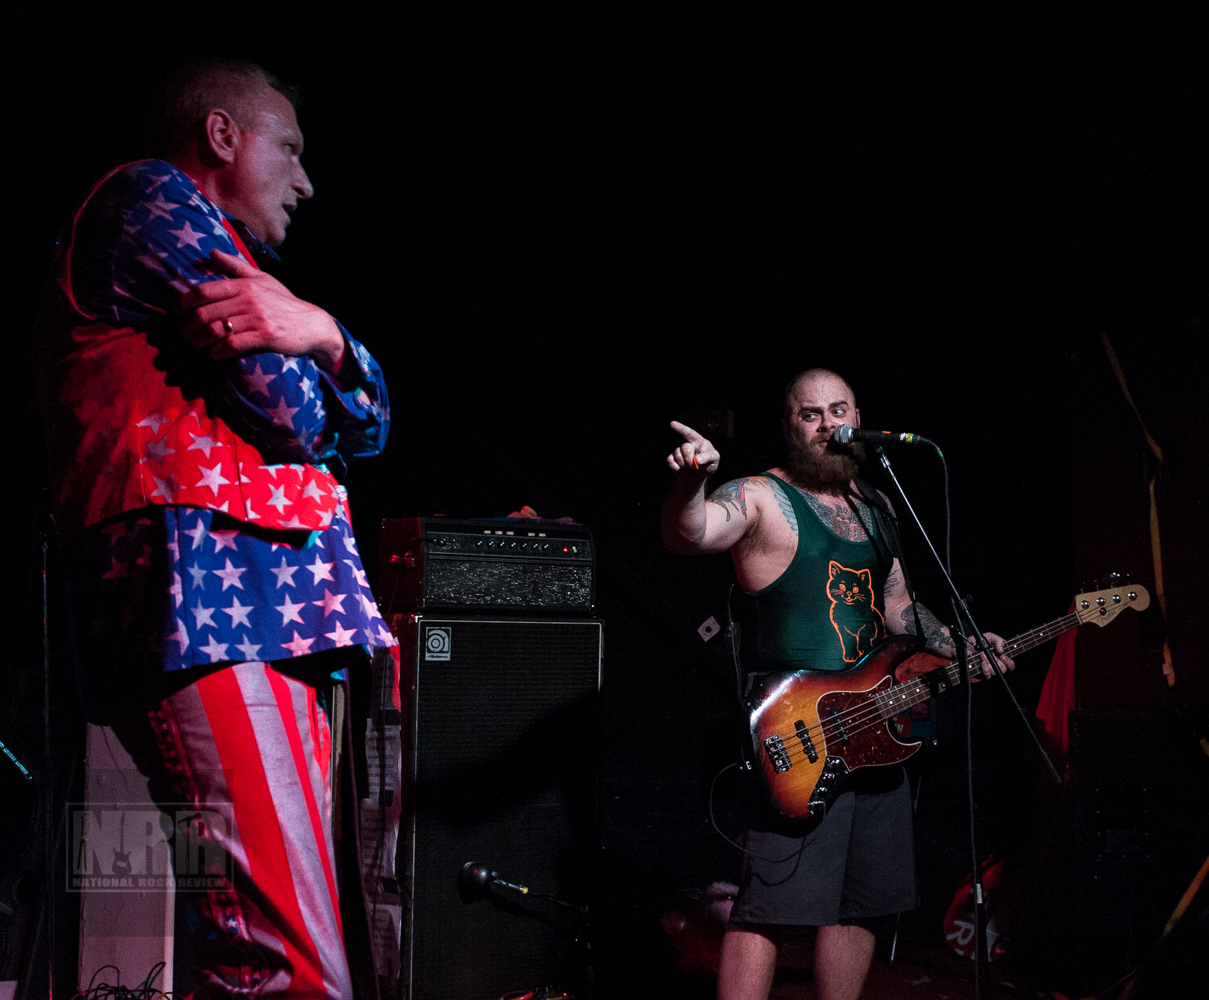 MeatMen-Branx-Portland_OR-20140605-WmRiddle-005.jpg